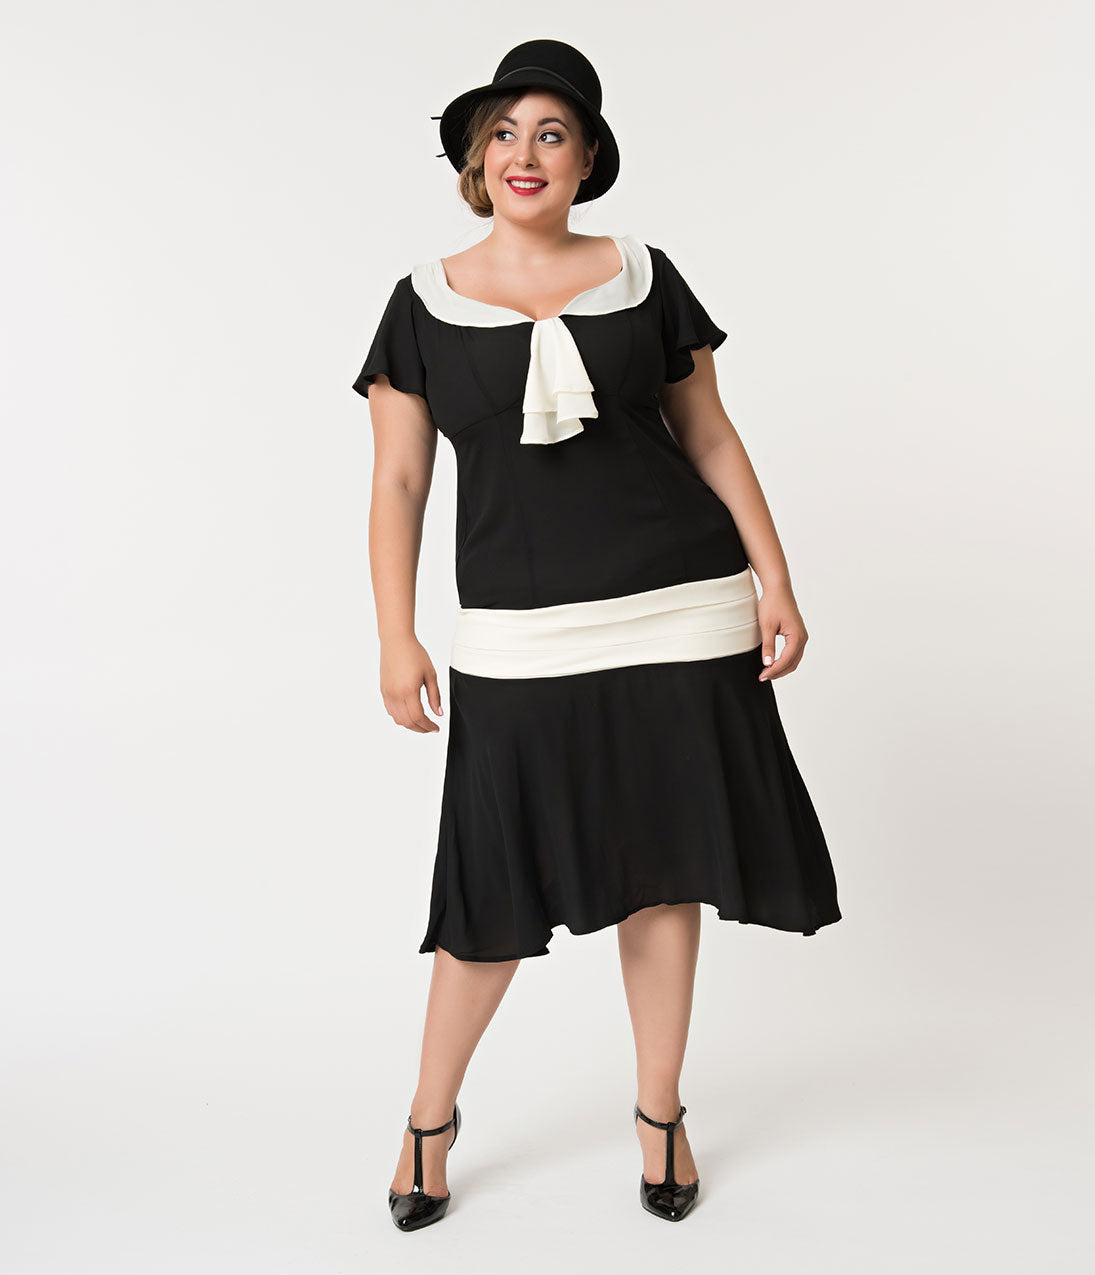 1920s Plus Size Flapper Dresses, Gatsby Dresses, Flapper Costumes Unique Vintage Plus Size 1920S Black  Cream Wilshire Flapper Day Dress $78.00 AT vintagedancer.com